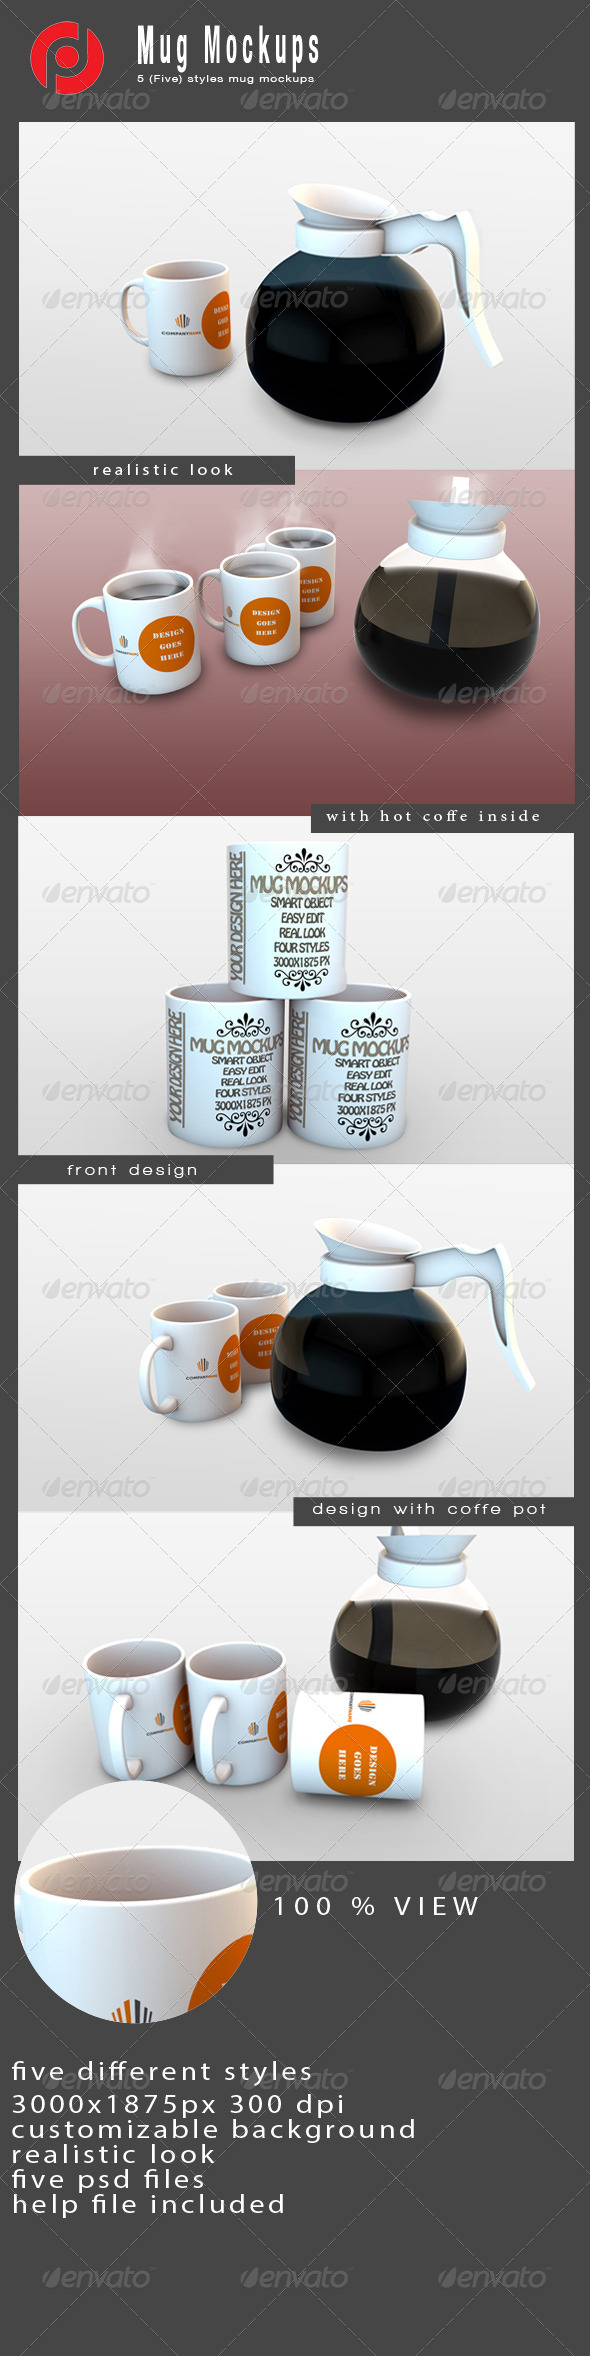 GraphicRiver Mug Mock-Ups 4807555